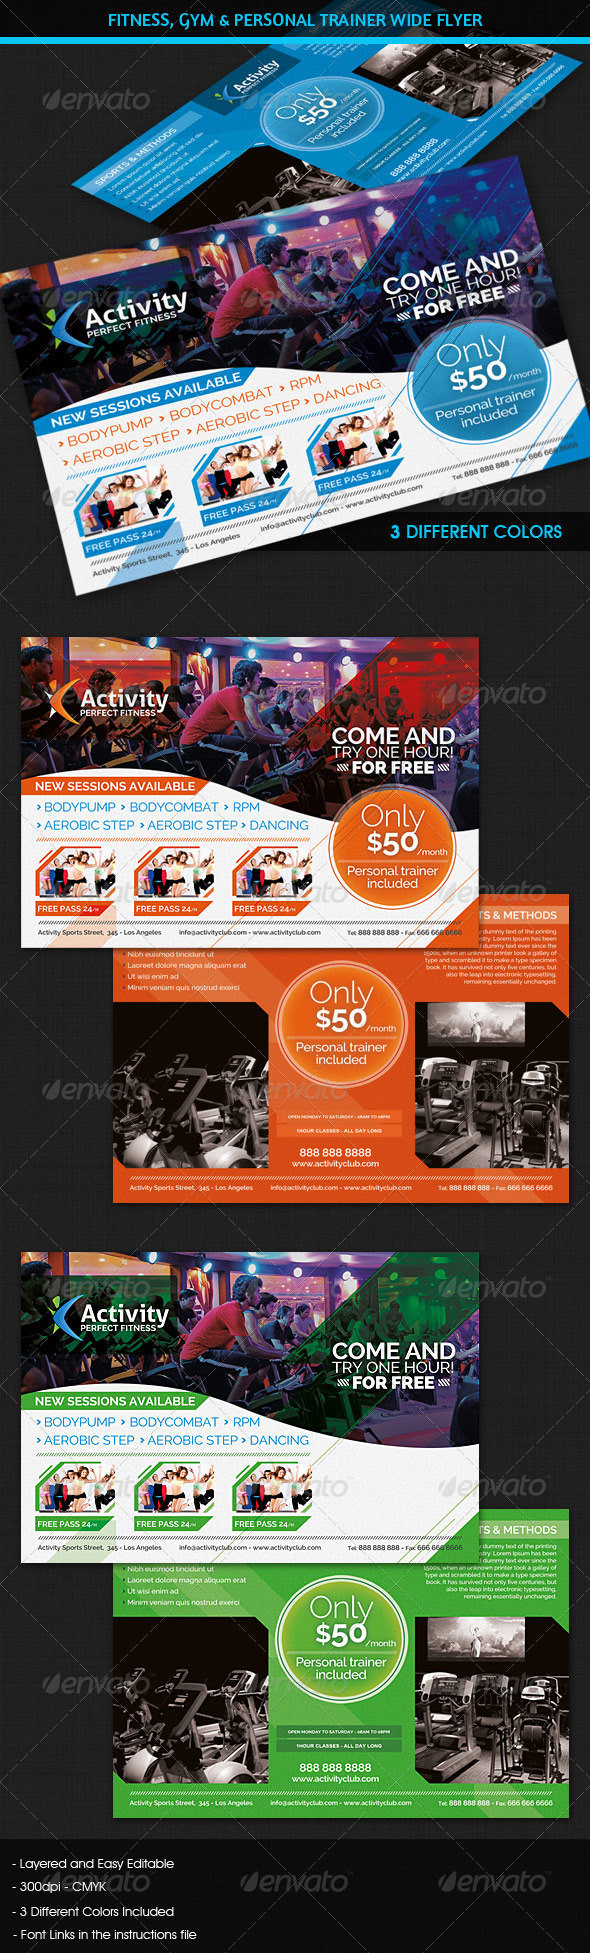 GraphicRiver Fitness Gym & Personal Trainer Wide Flyer 5296904